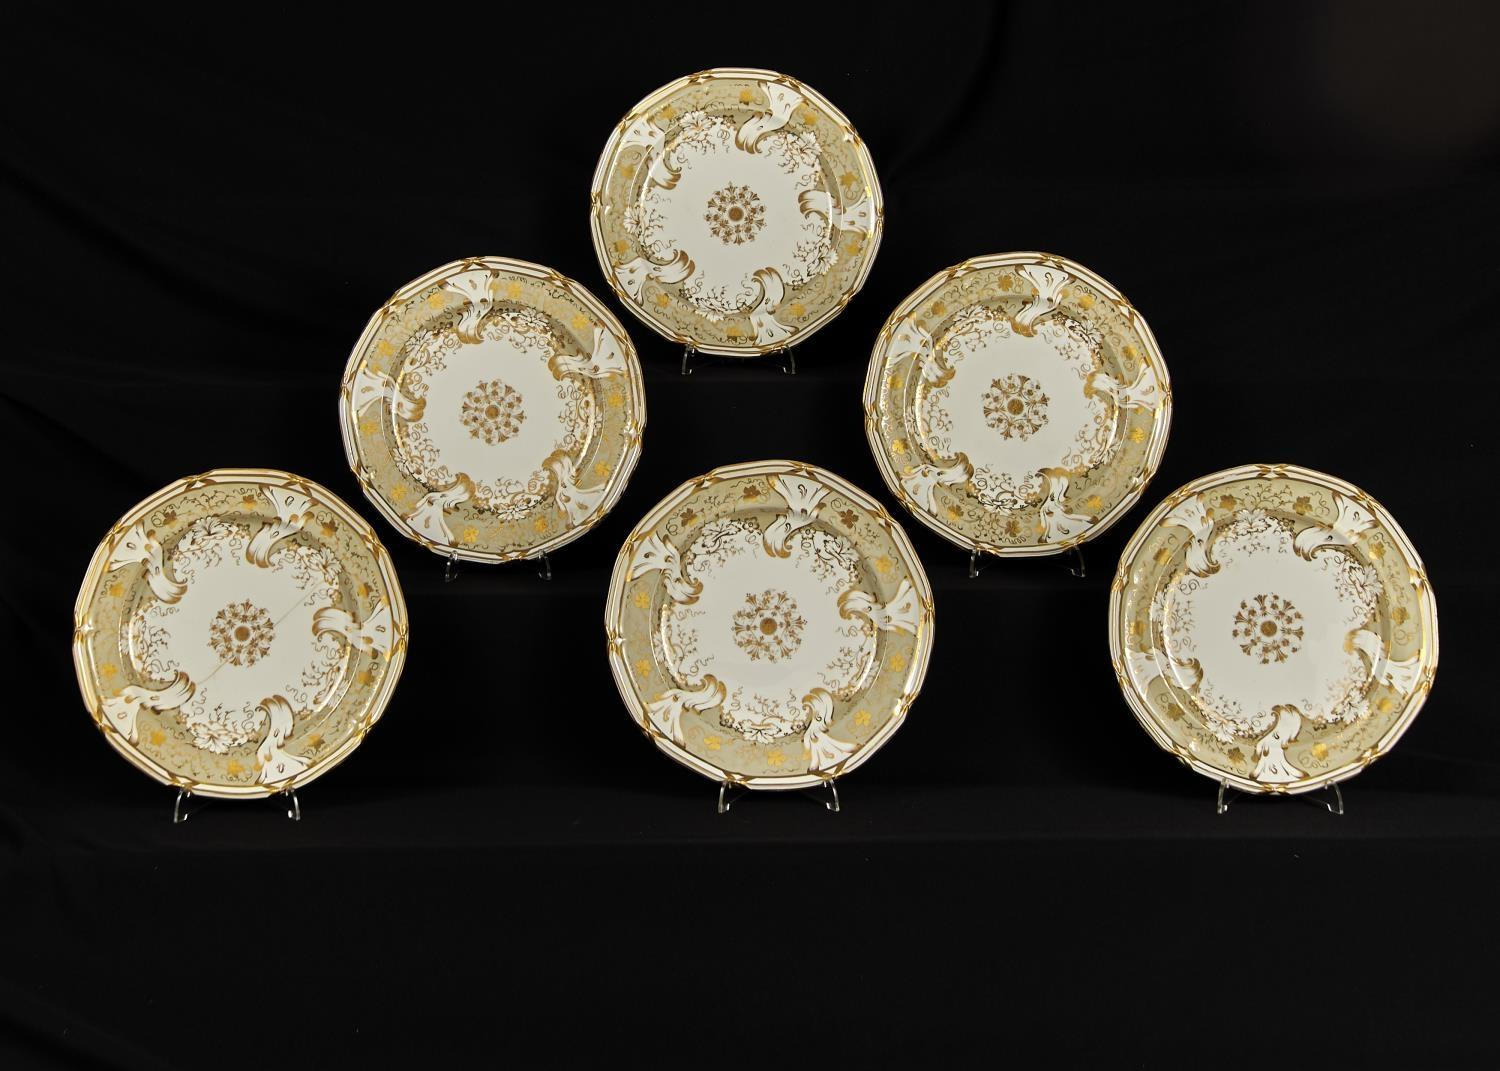 A SET OF SIX DAVENPORT BONE CHINA MOULDED EDGE DINNER PLATES, C1835-40, DECORATED WITH A GREY AND